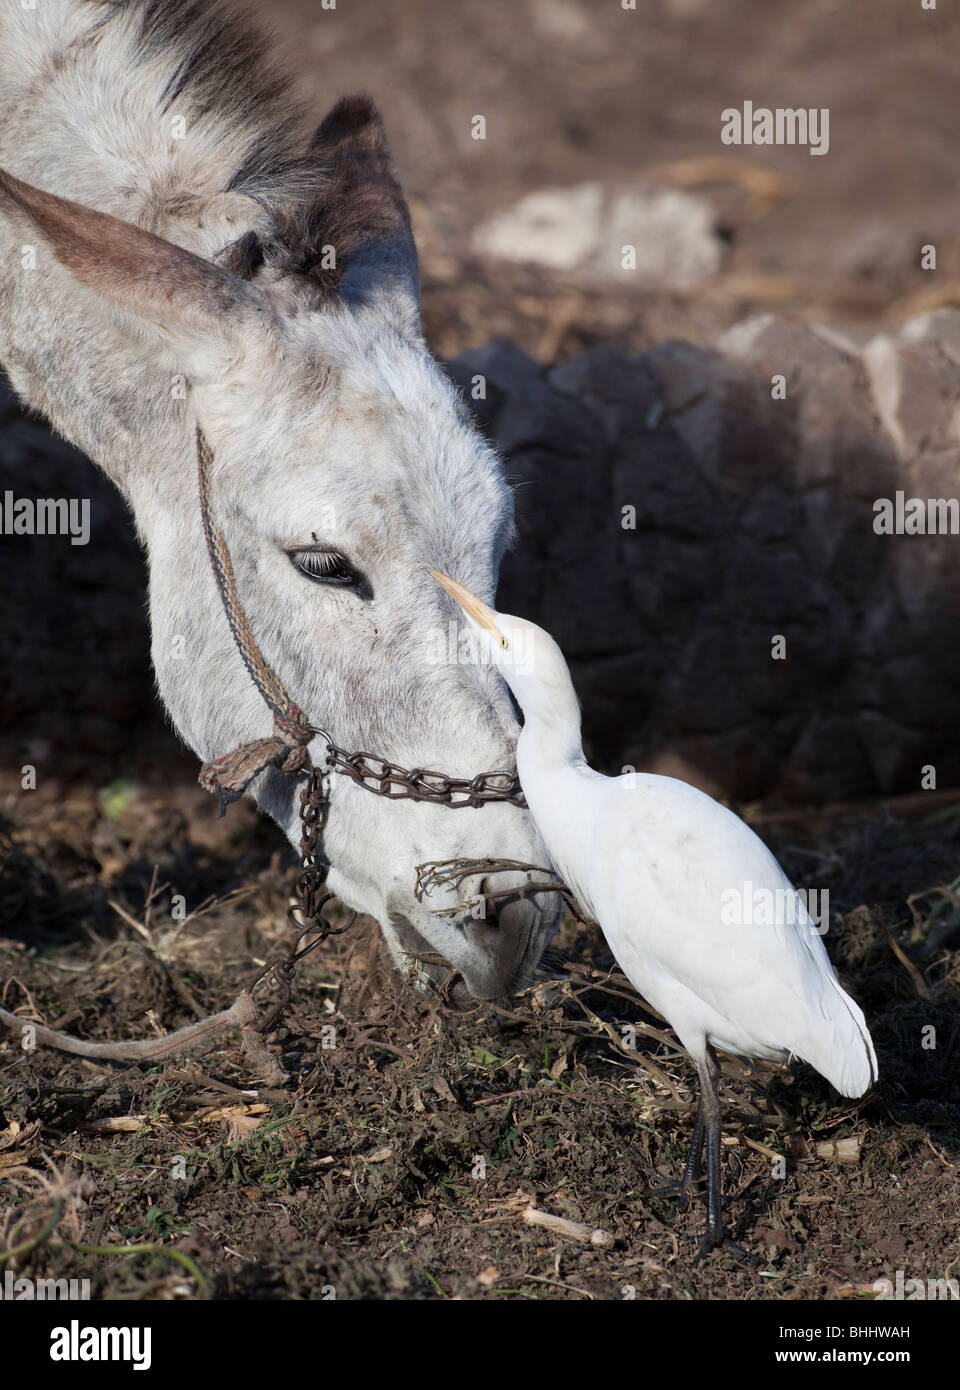 cattle egret (Bubulcus ibis) eating flies on the head of a donkey, field in Dashur area, Egypt. - Stock Image